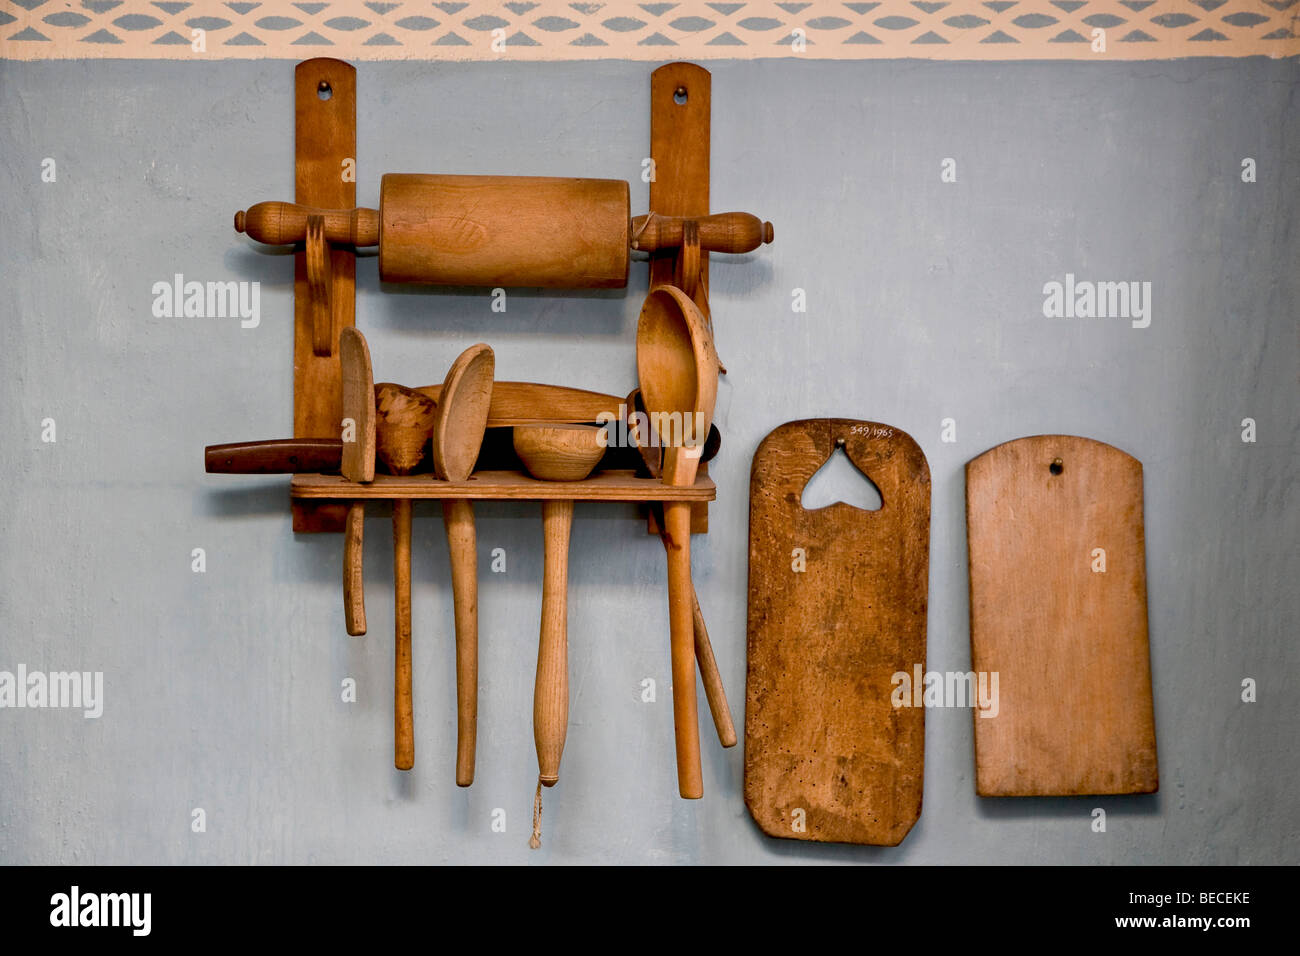 Kitchen equipment - Stock Image